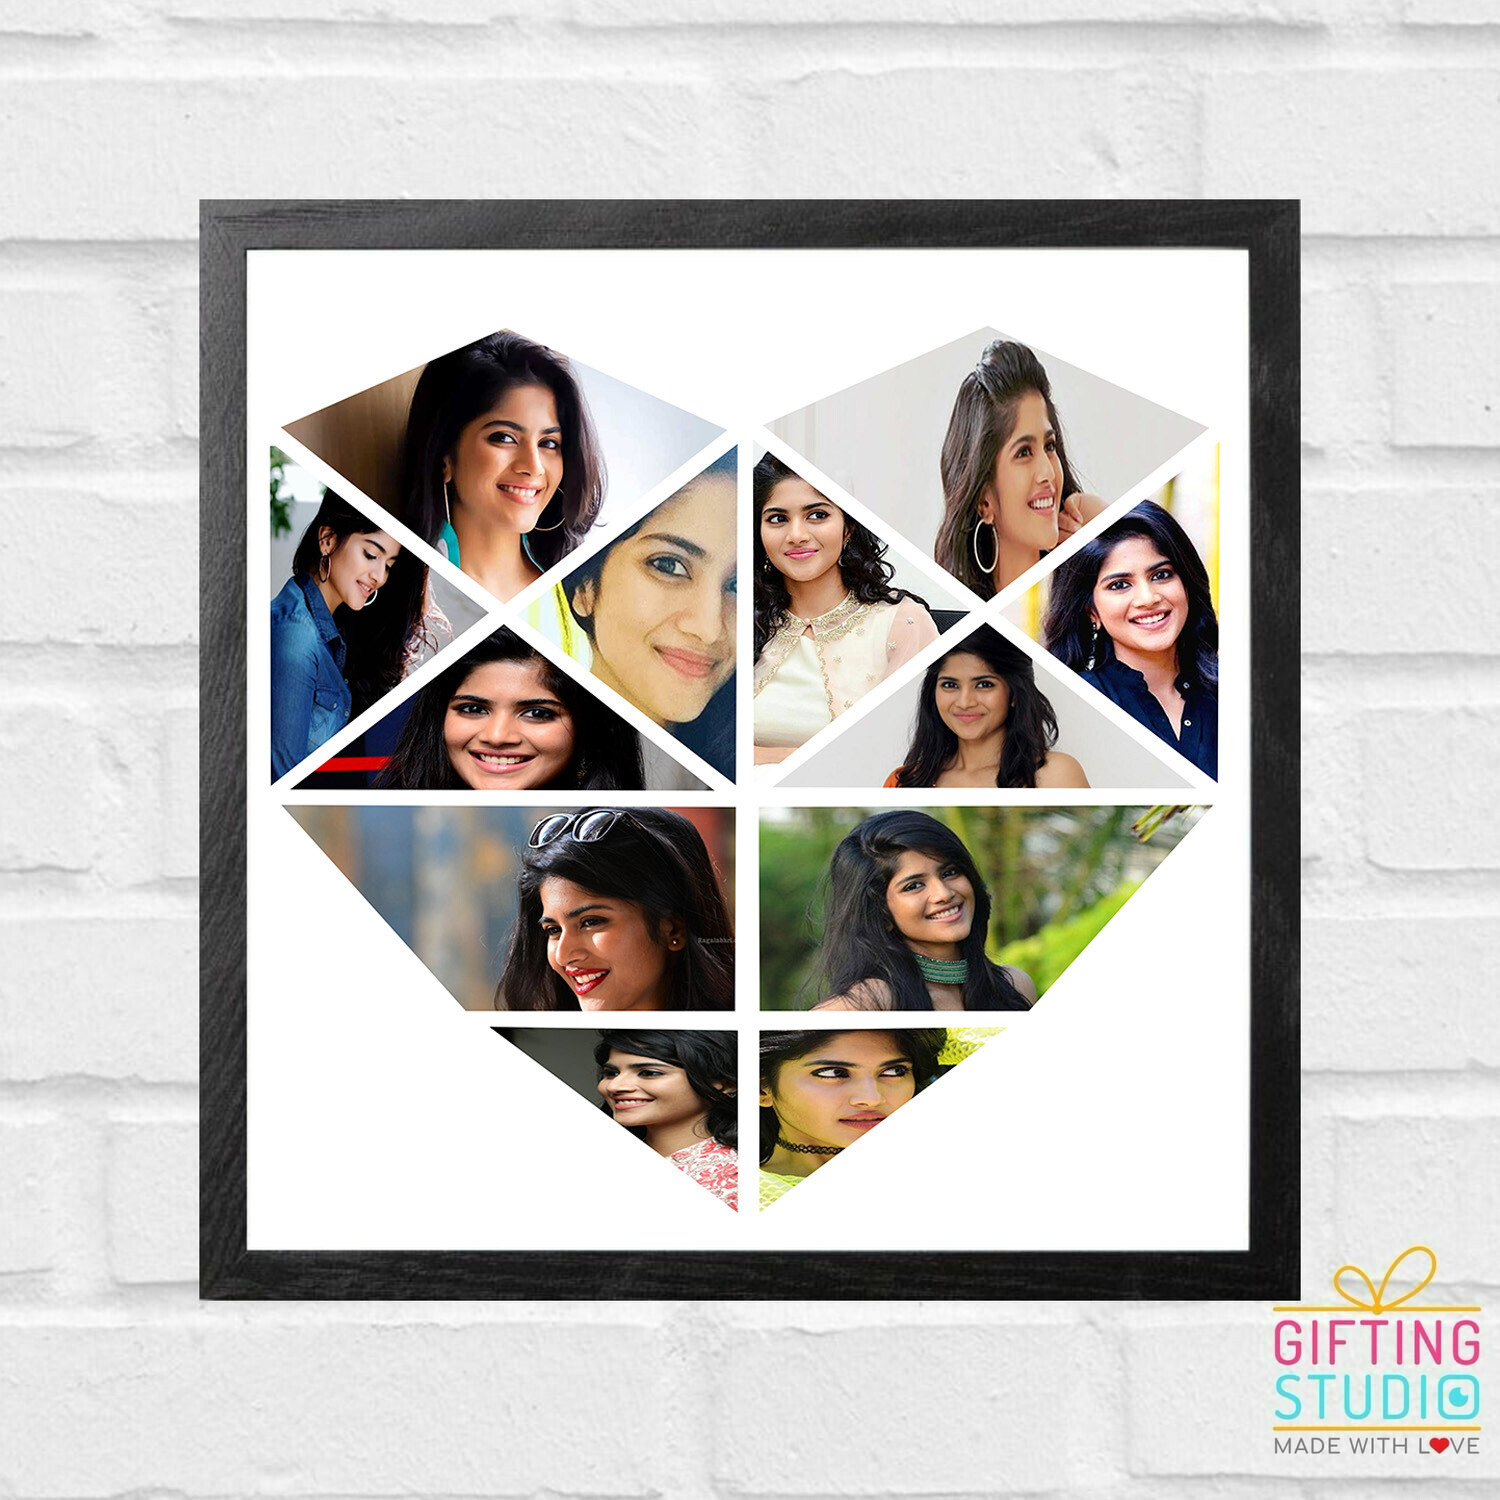 Heart Shaped Photo Collage Frame | Personalised Gift (12 PHOTOS)